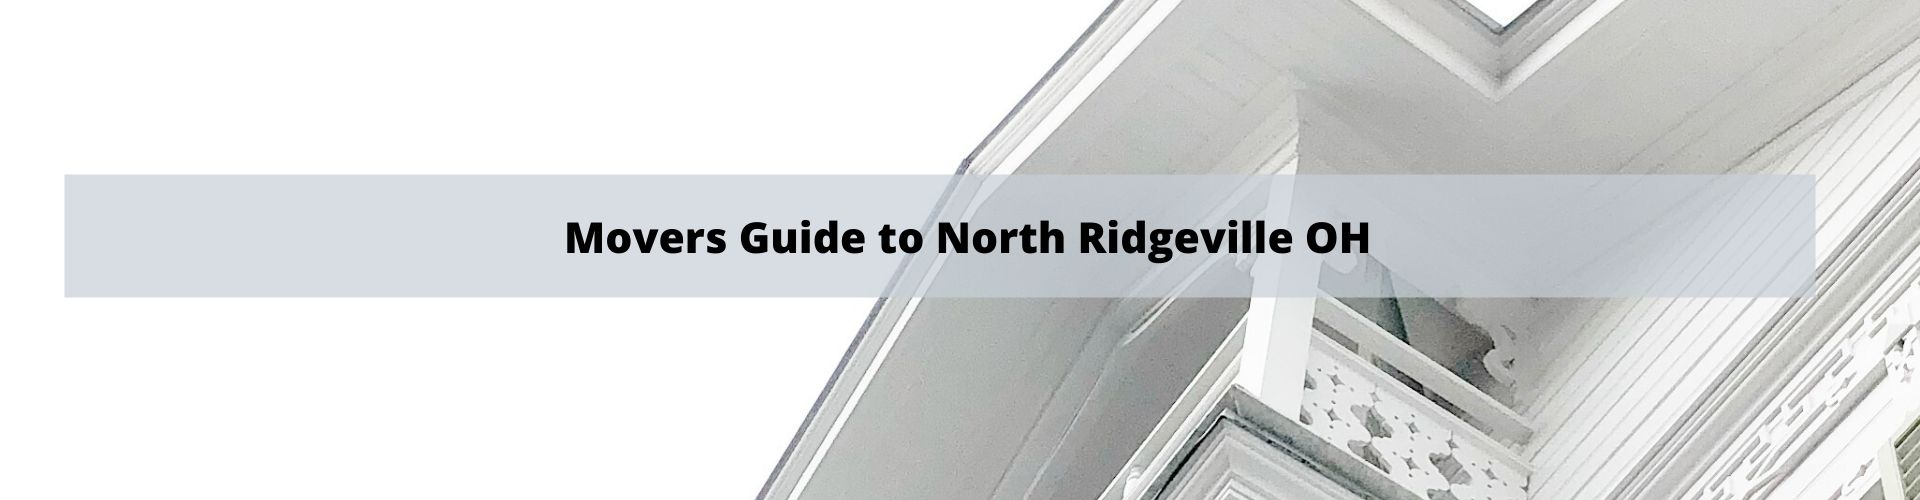 Mover's Guide to North Ridgeville OH